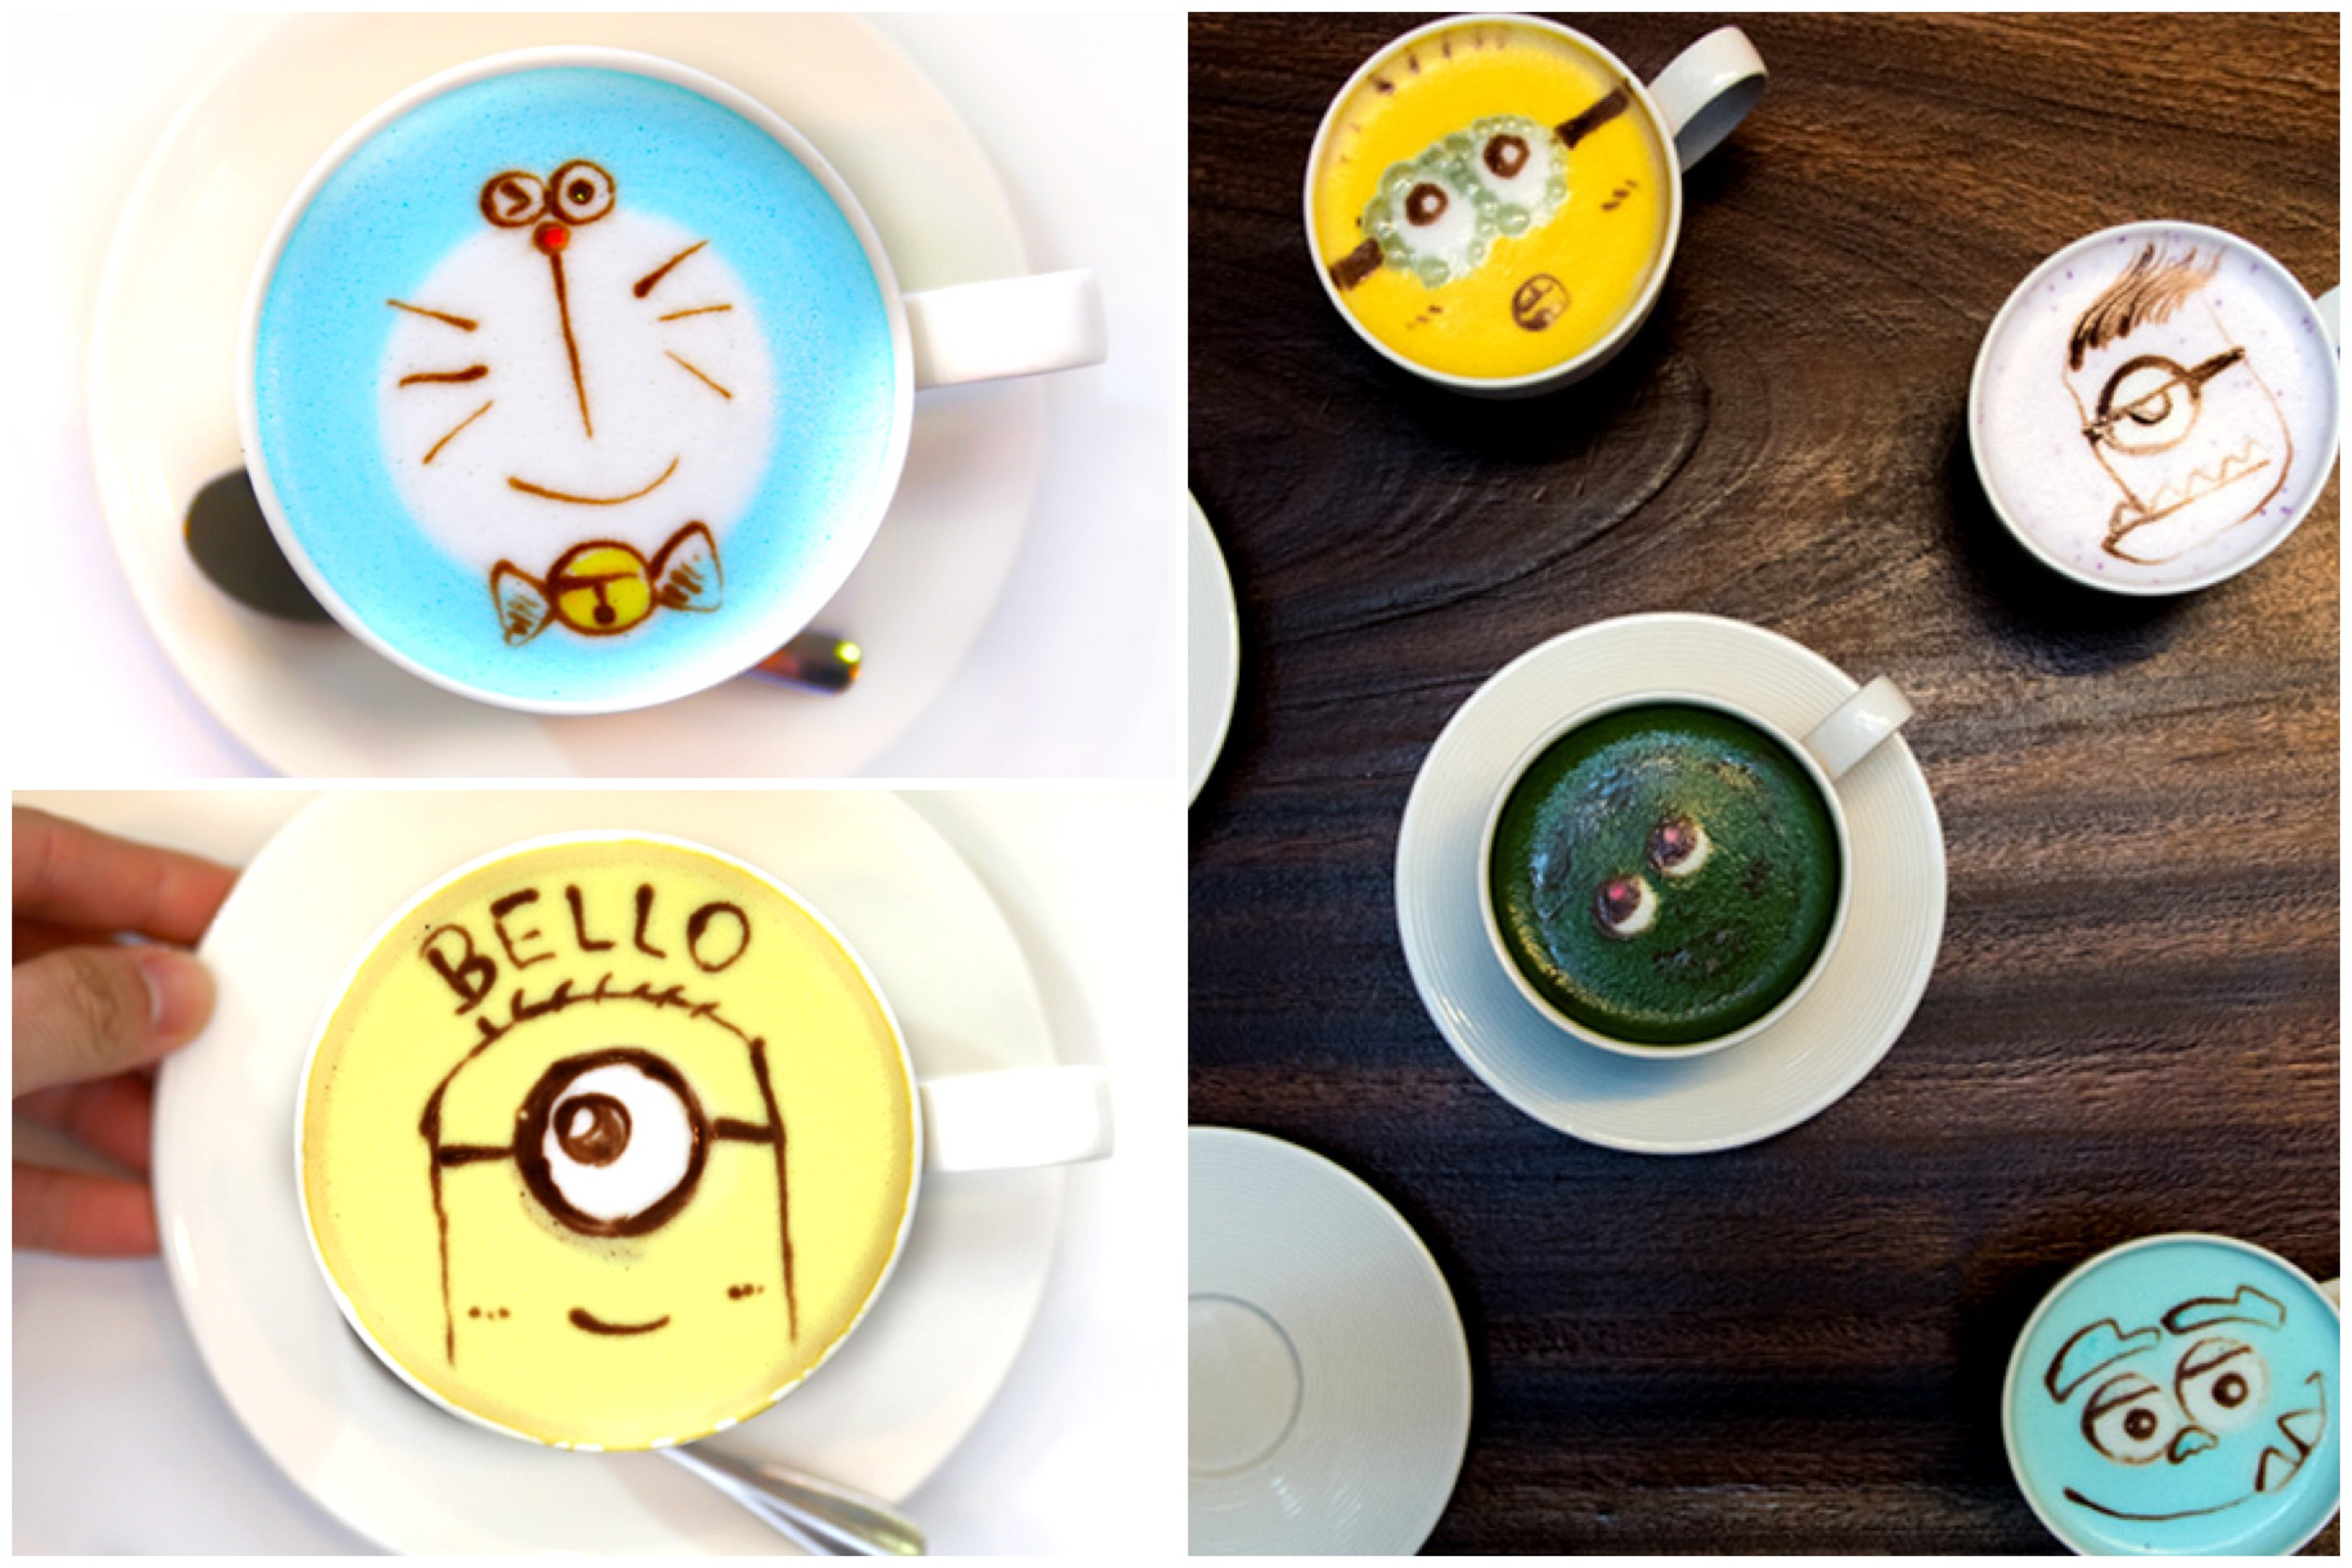 Café R&C - Get The Cutest LEGIT Latte Art Here, At Causeway Bay Hong Kong